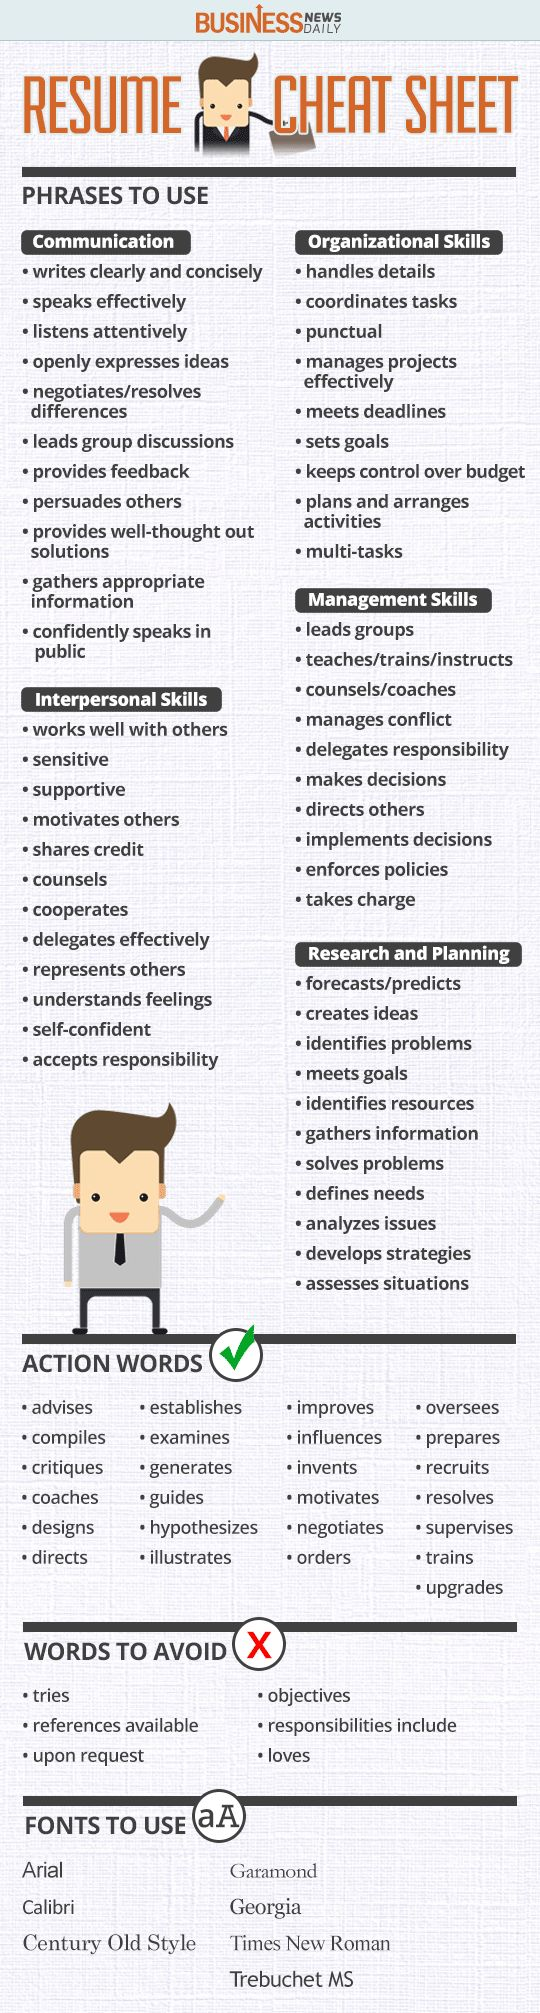 Opposenewapstandardsus  Marvellous  Ideas About Resume On Pinterest  Cv Format Resume  With Glamorous Resume Cheat Sheet Infographic Andrews Almost Done With A Complete Unit On Employment Which With Archaic Resume For Hospitality Also Free Resume Template Download Pdf In Addition Making Your Resume Stand Out And Leadership Skills On Resume As Well As Resumes Sample Additionally Law School Resume Samples From Pinterestcom With Opposenewapstandardsus  Glamorous  Ideas About Resume On Pinterest  Cv Format Resume  With Archaic Resume Cheat Sheet Infographic Andrews Almost Done With A Complete Unit On Employment Which And Marvellous Resume For Hospitality Also Free Resume Template Download Pdf In Addition Making Your Resume Stand Out From Pinterestcom